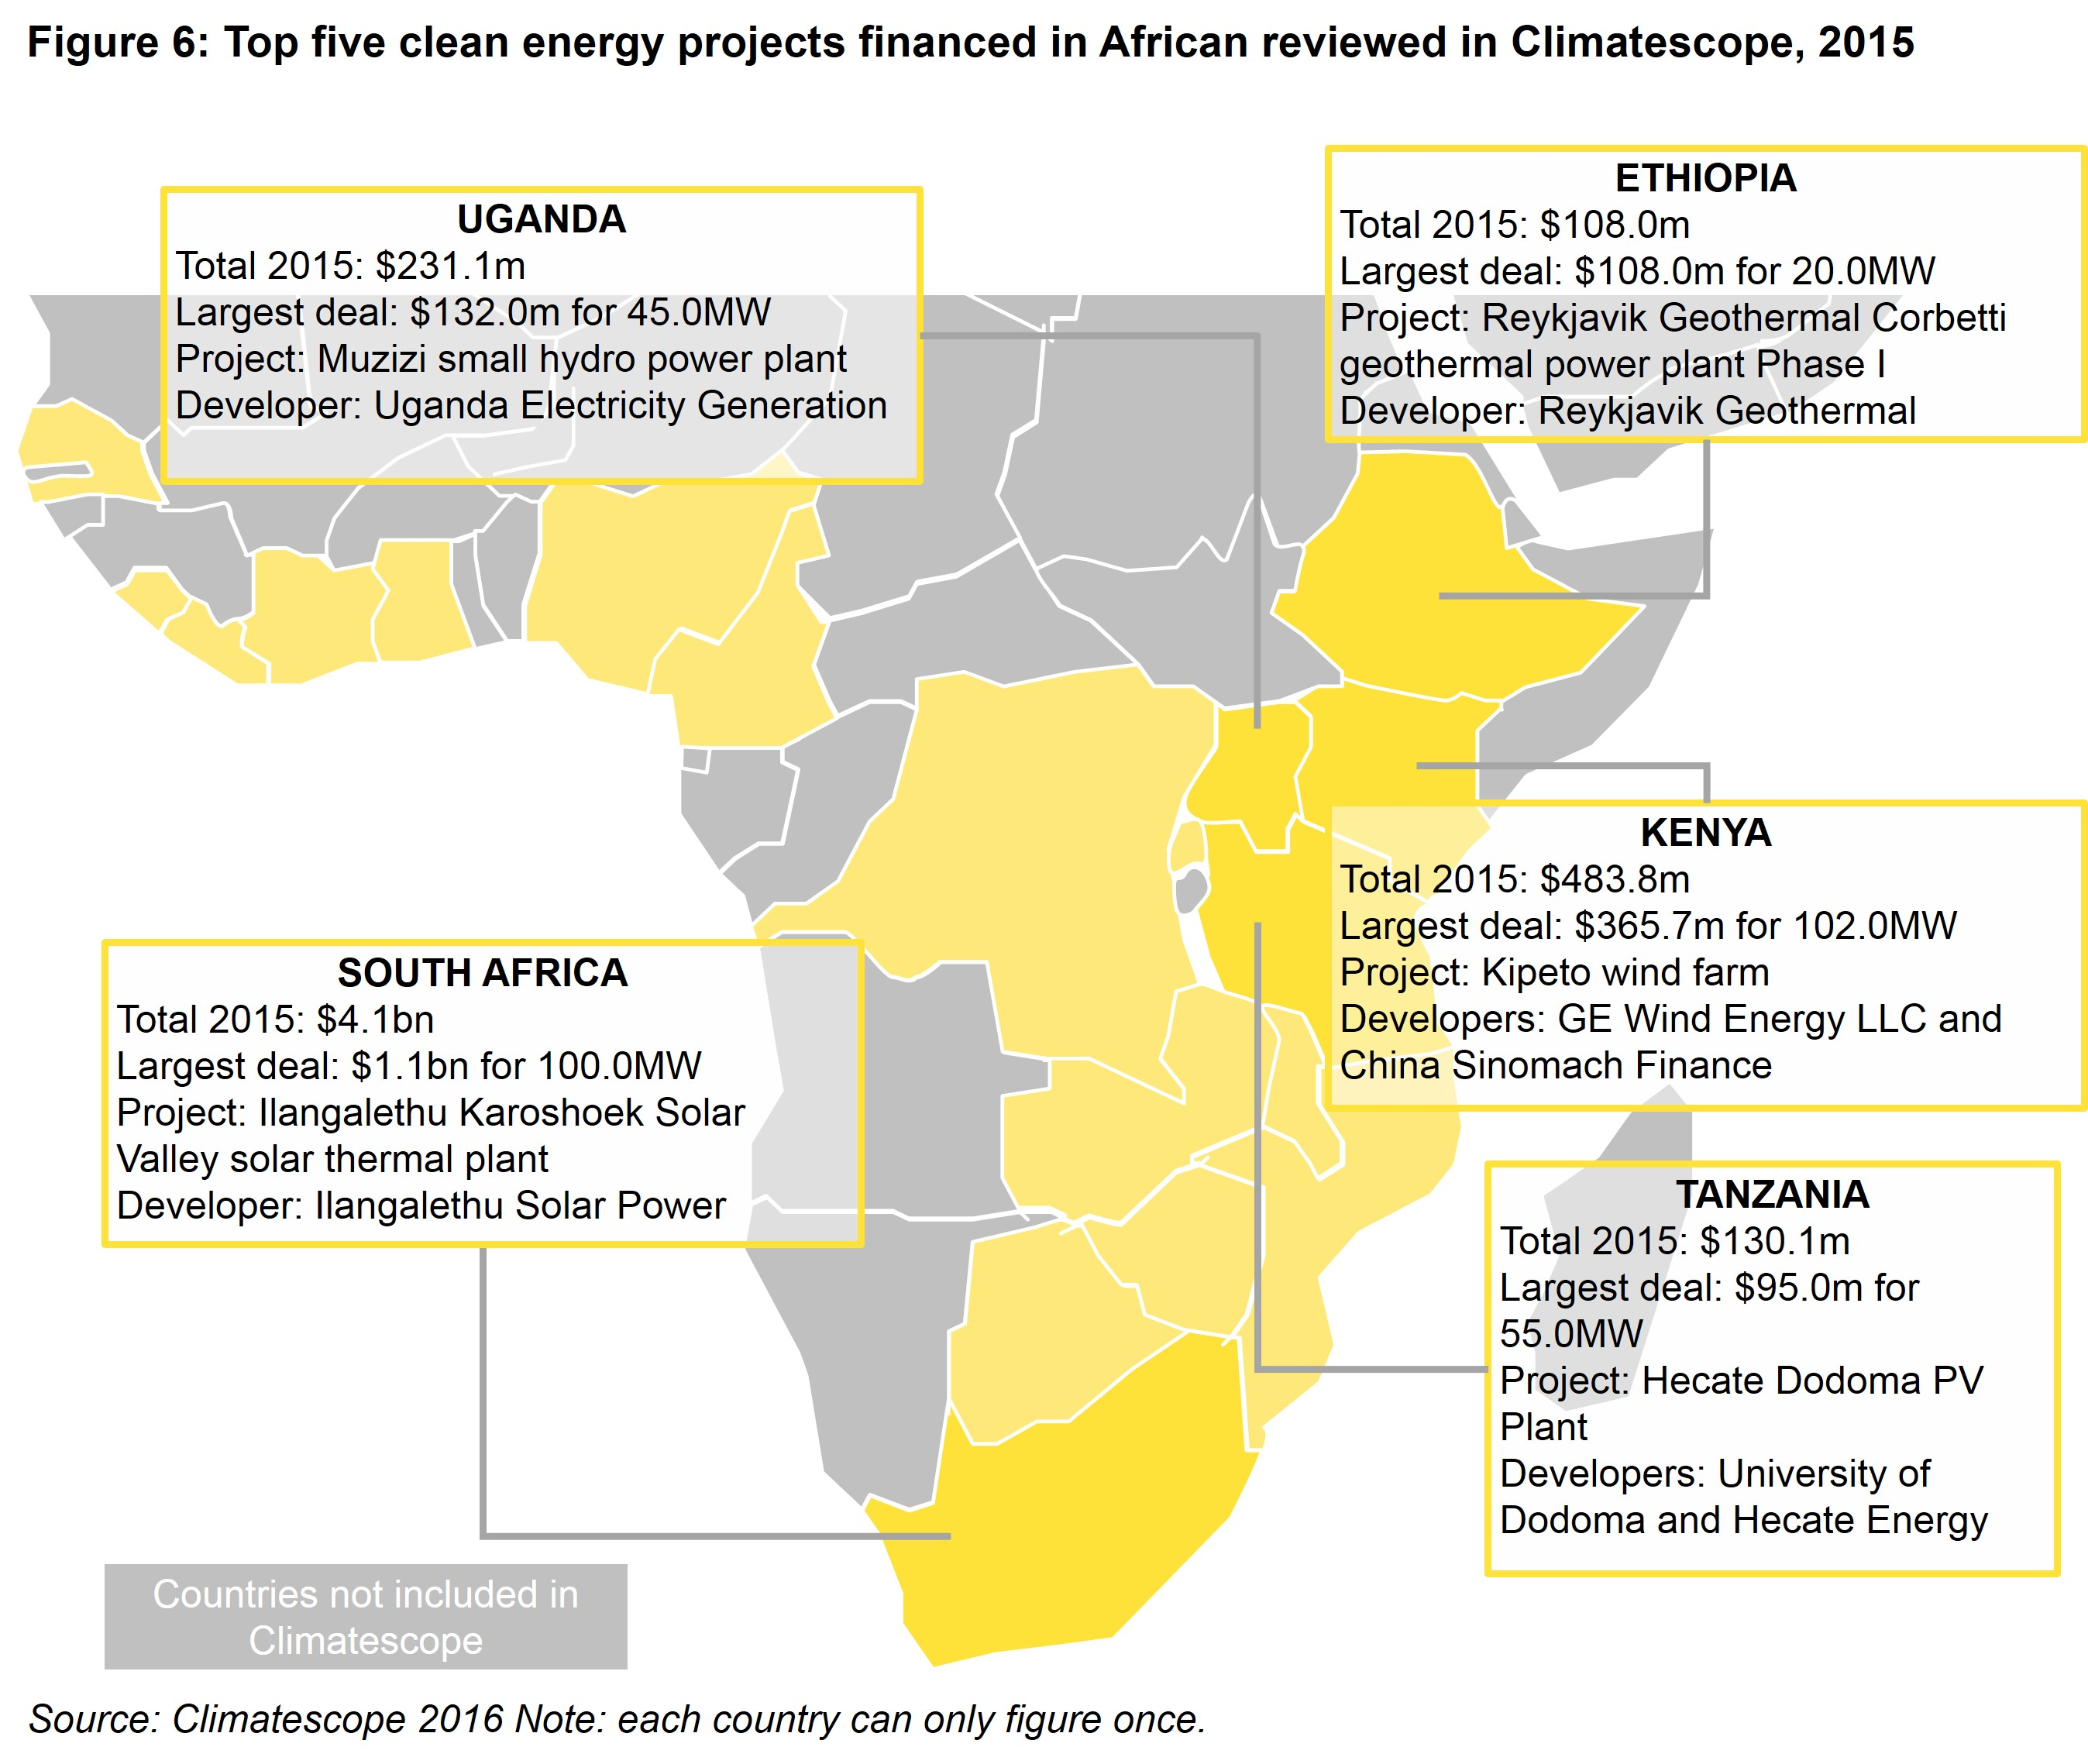 AM Fig 6 - Top five 2015 clean energy project financings in Sub-Saharan African countries reviewed by Climatescope